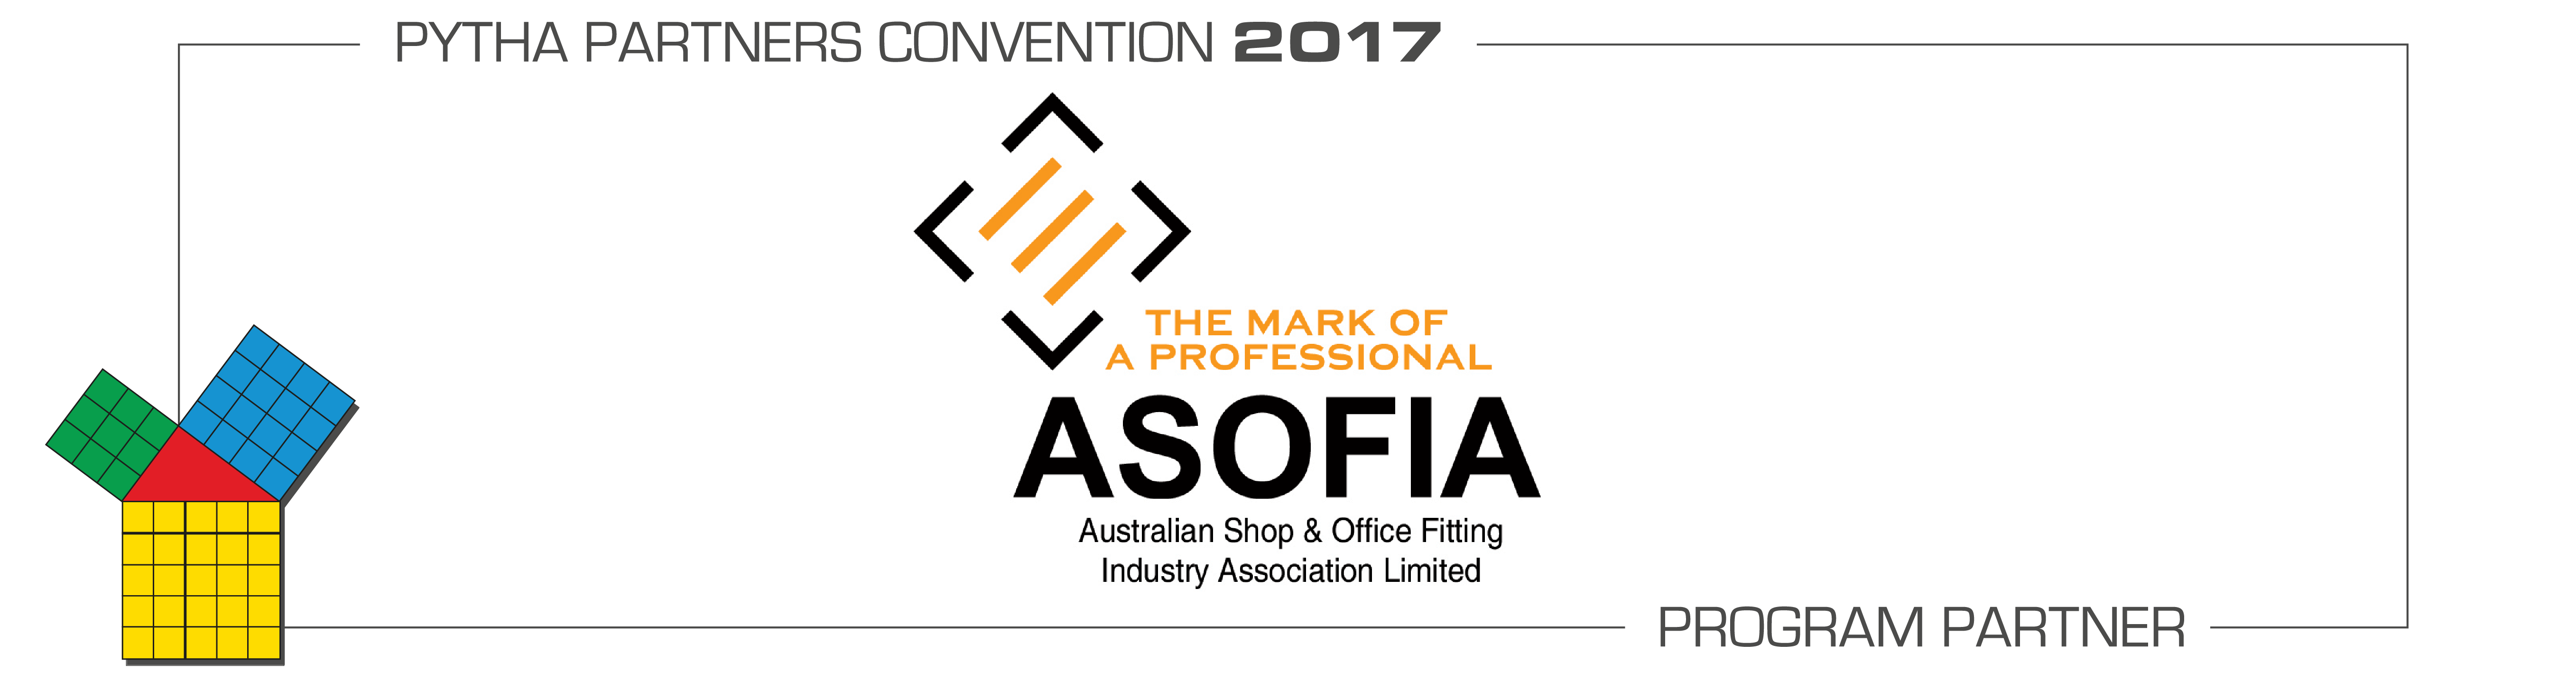 Pytha_Program Partner_ASOFIA-01